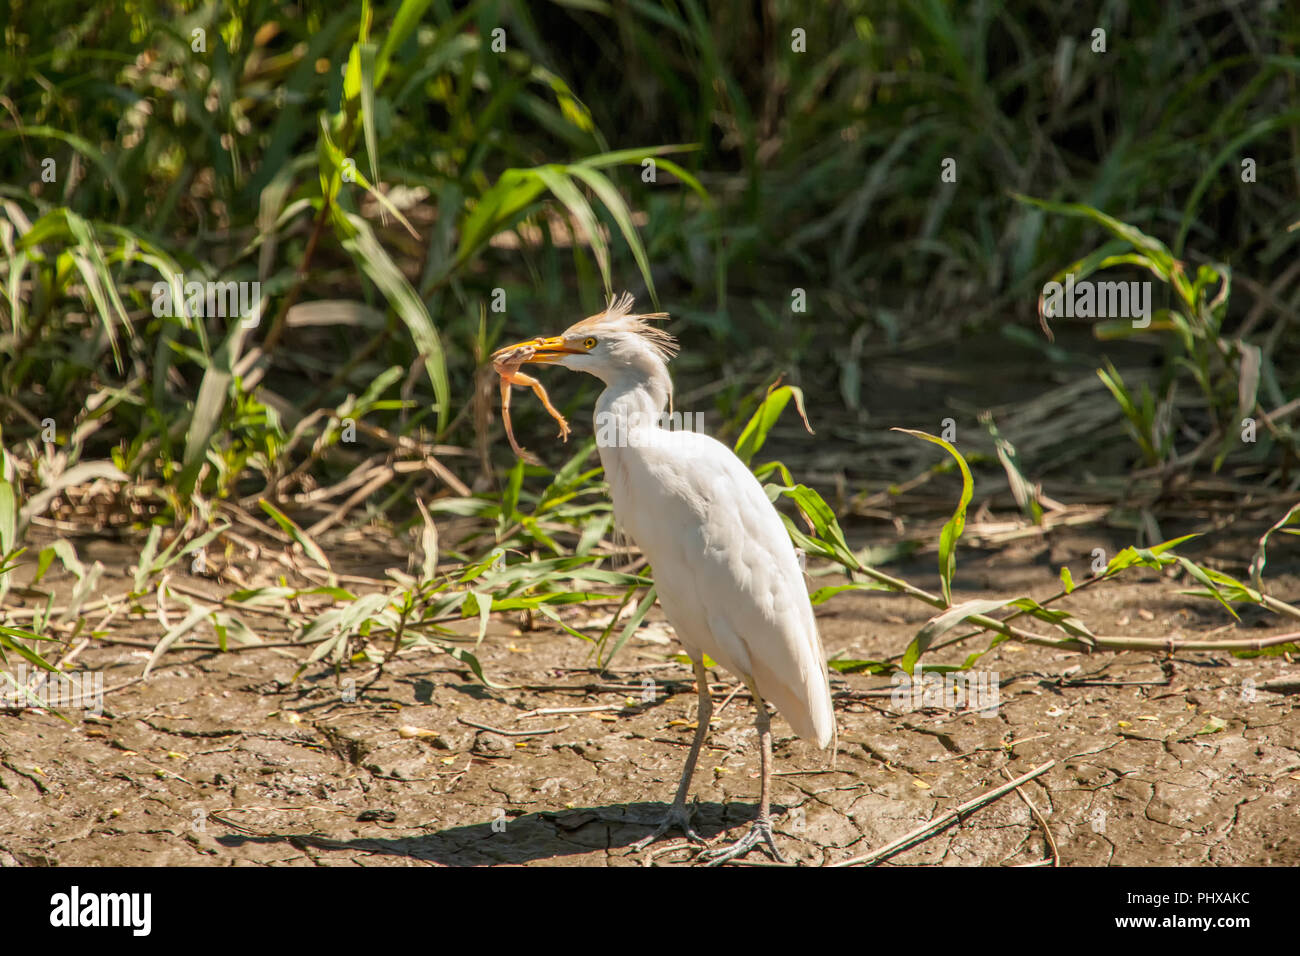 Cattle Egret (Bubulcus ibis) eating a frog, seen on a boat ride on the Tempisque River in Palo Verde National Park, Costa Rica - Stock Image